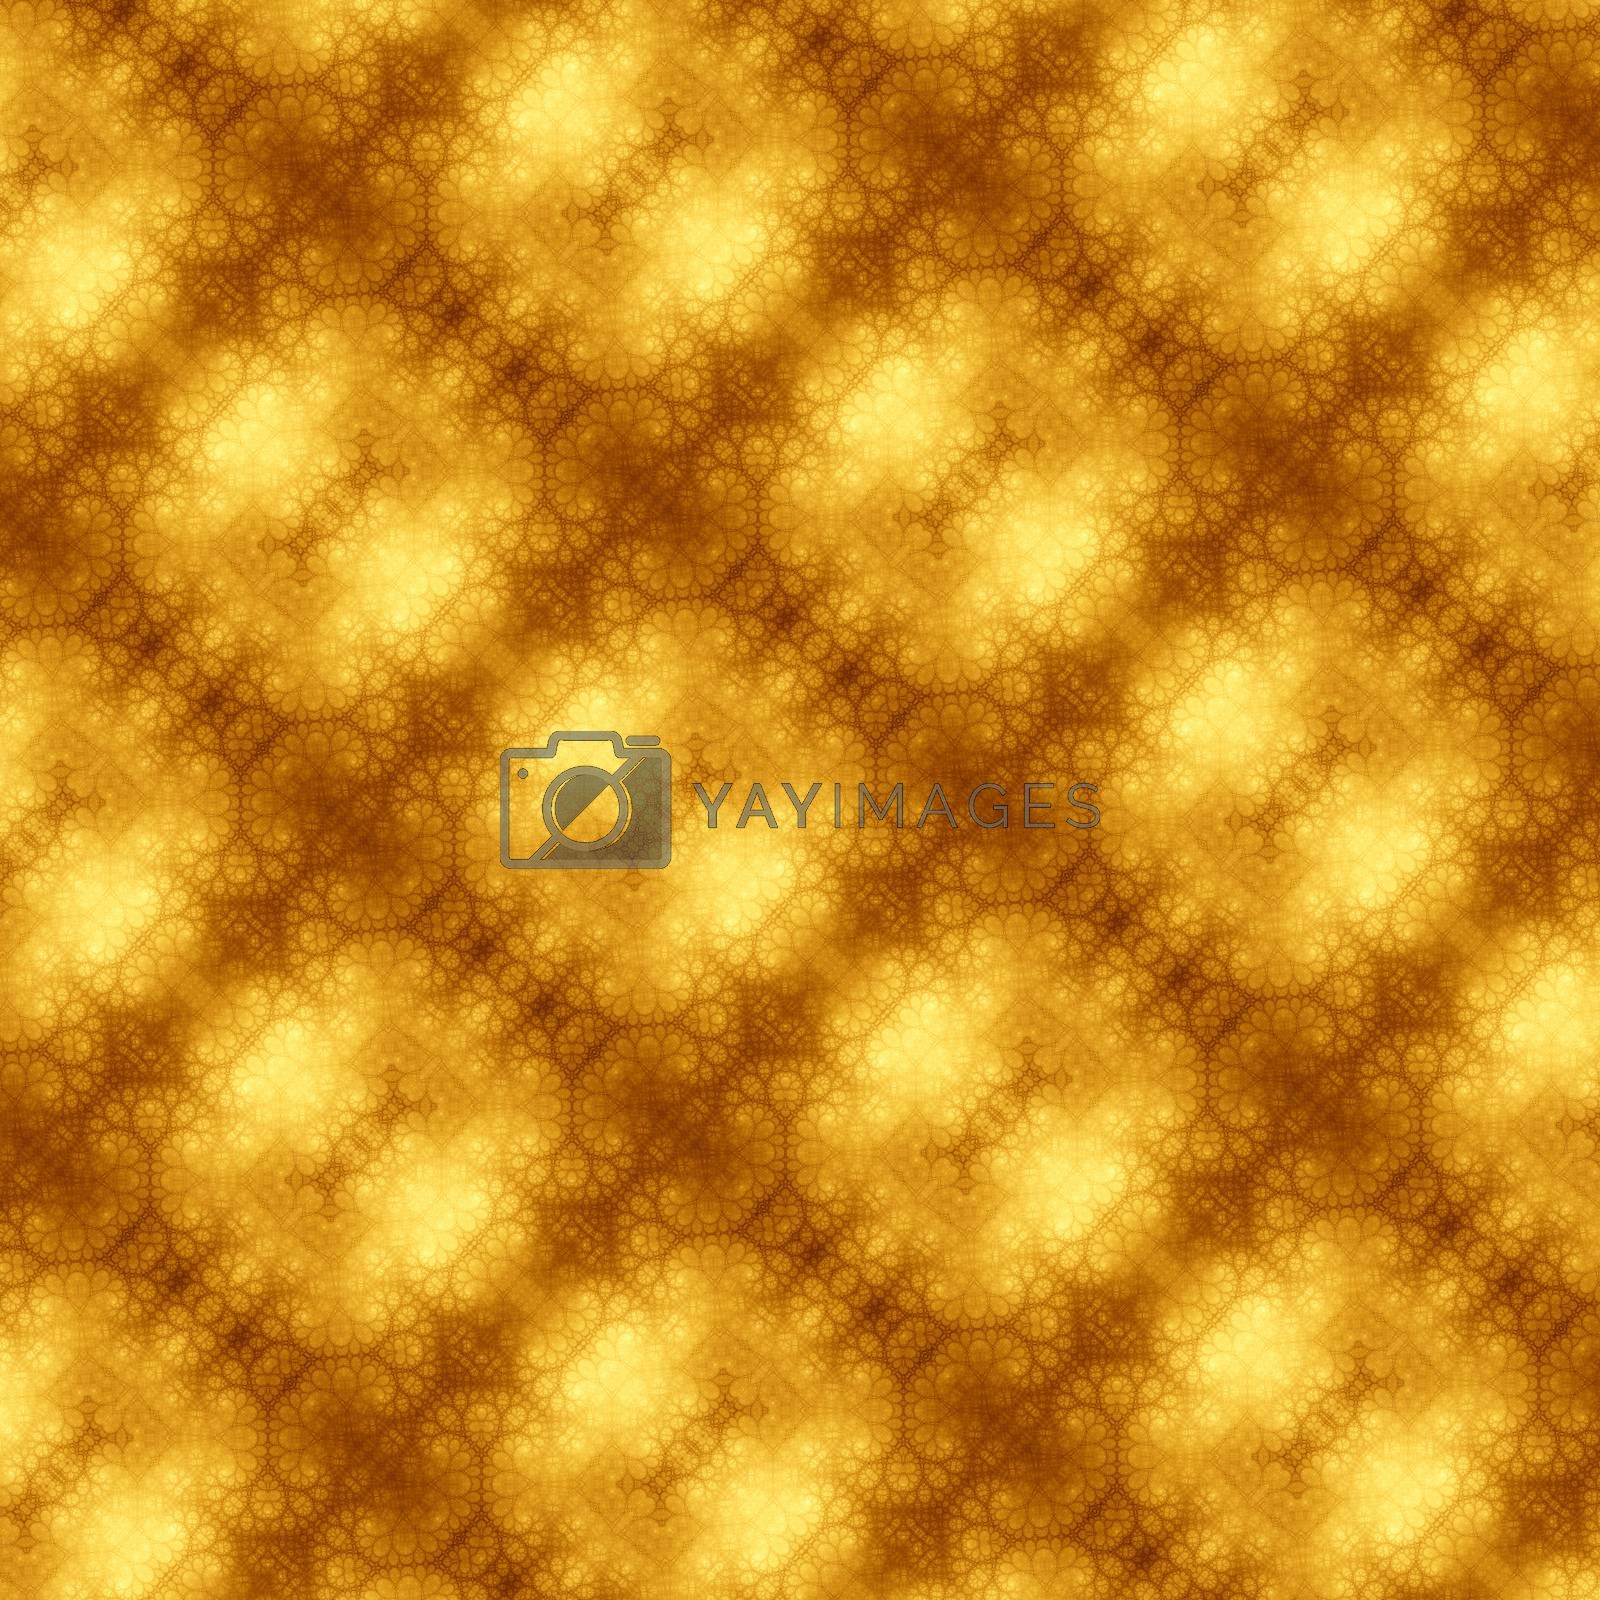 An illustration of an abstract fractal graphic art background